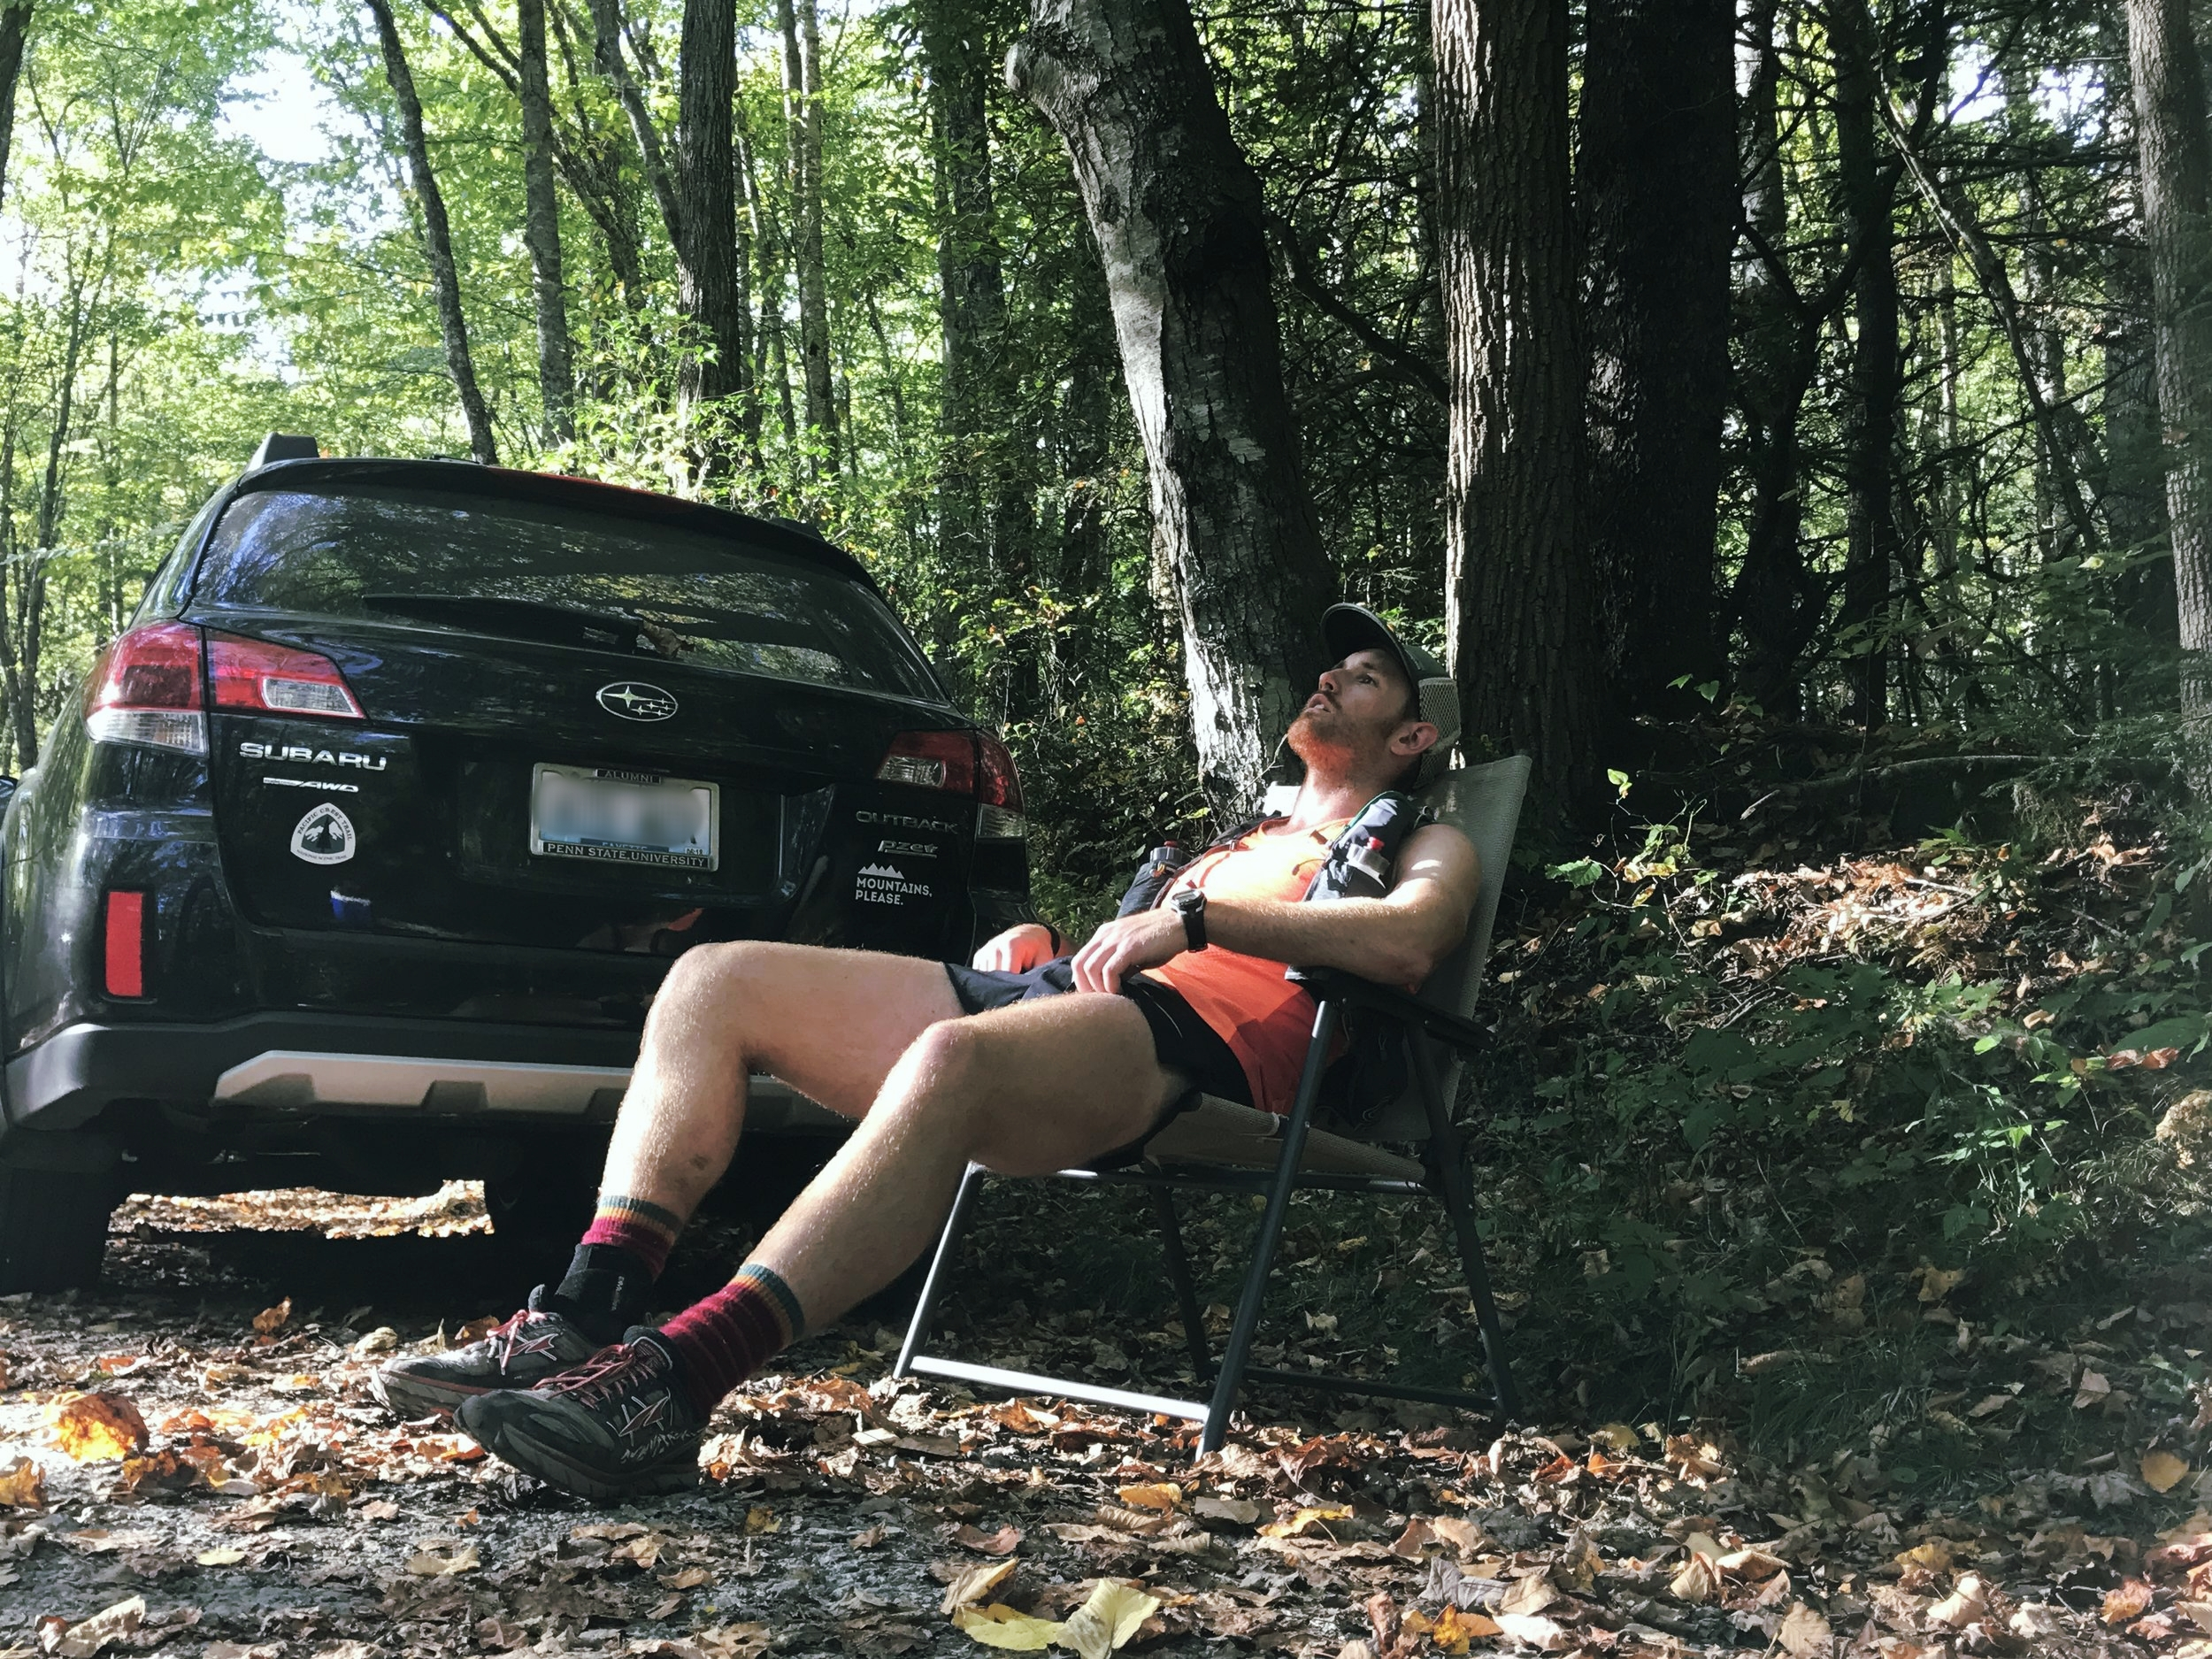 Random Dirt Road, access to trailheads, and great spot to relax after a long run. 9/2017